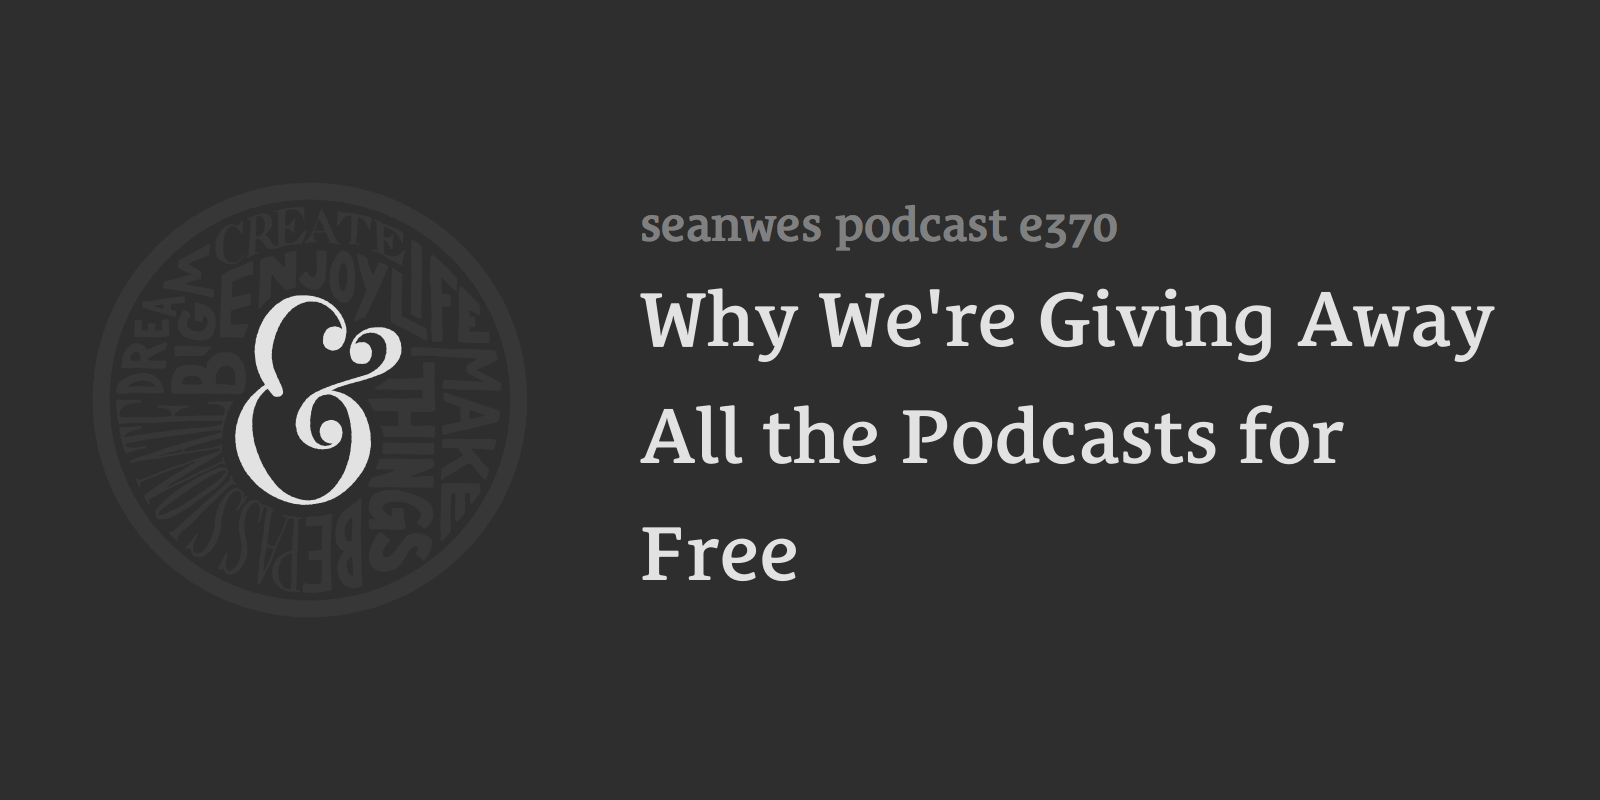 Why We're Giving Away All the Podcasts for Free